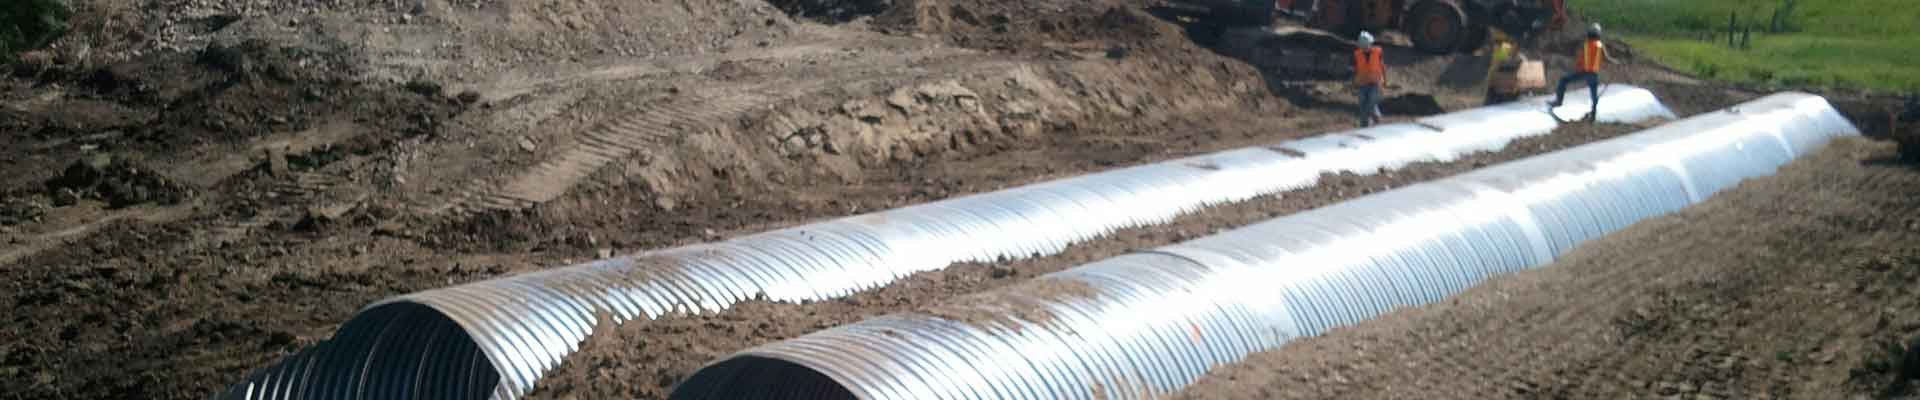 Pipe installation in ground